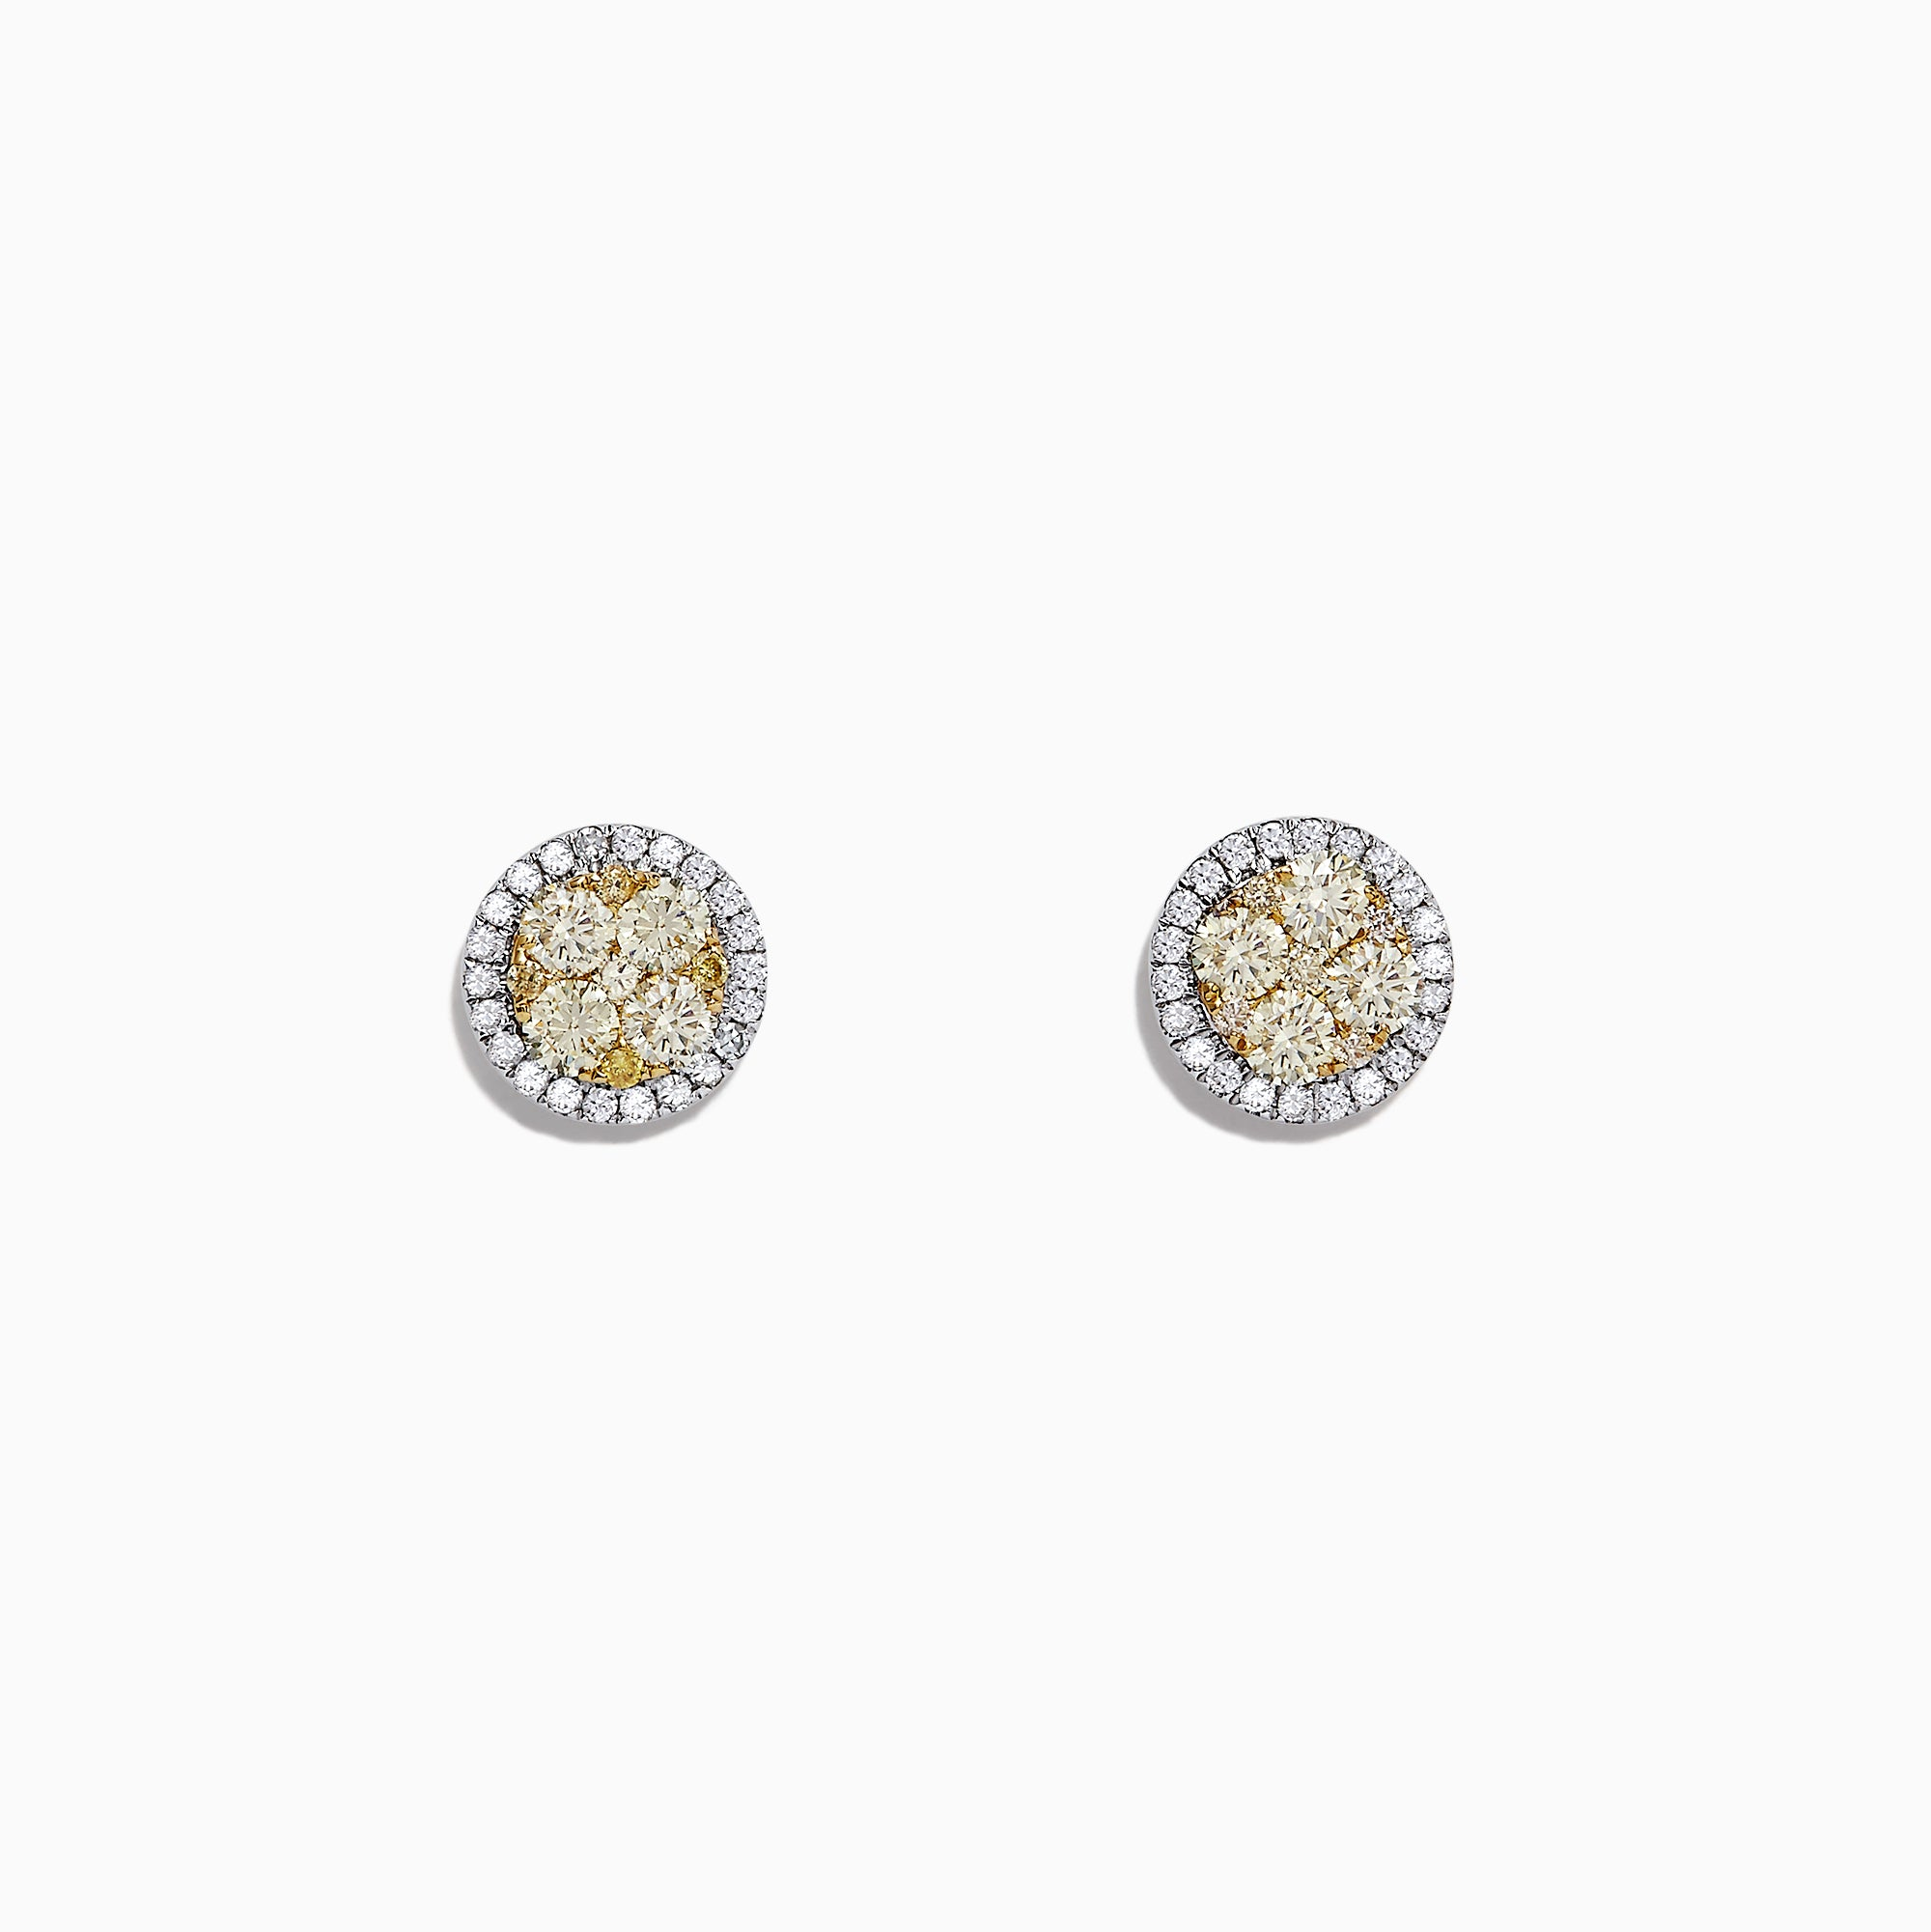 Effy Canare 14K Two-Tone Gold  Yellow and White Diamond Earrings, 1.08 TCW